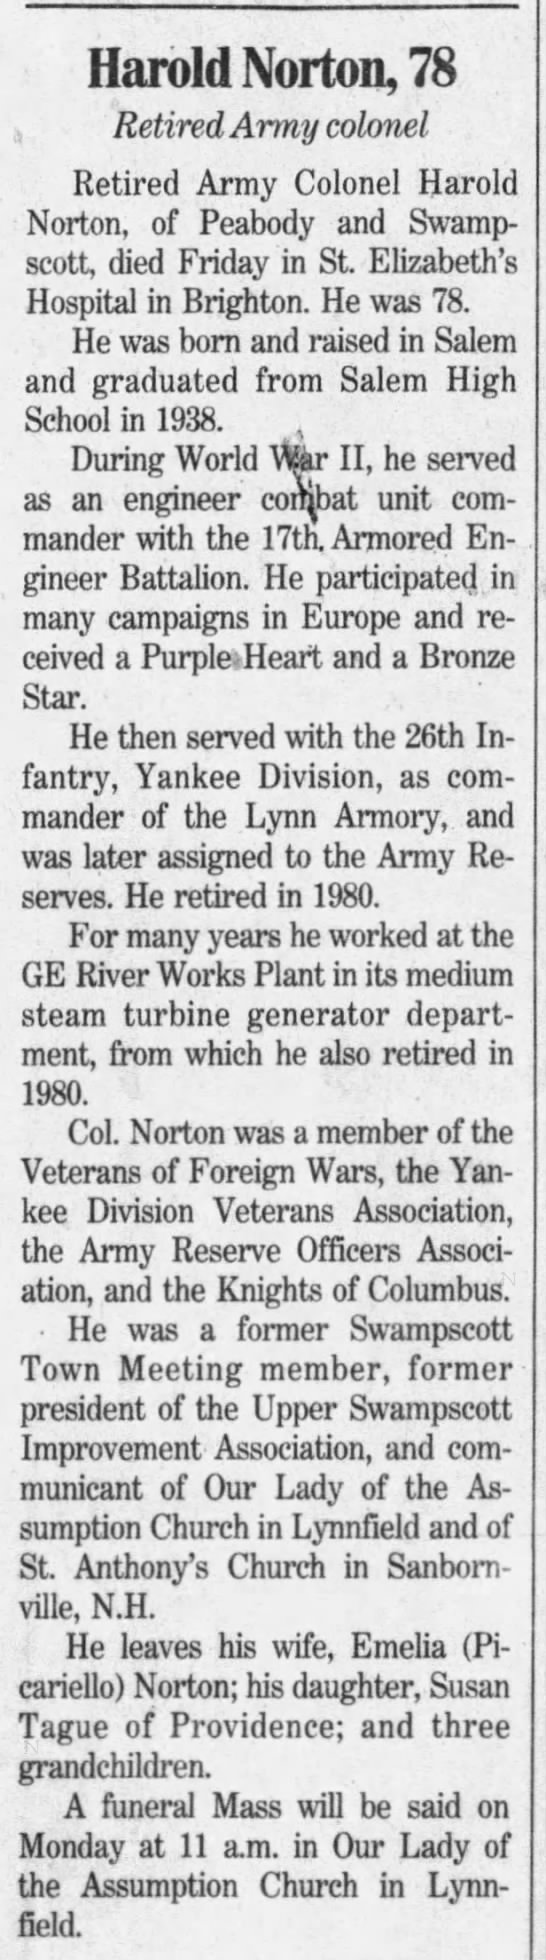 Colonel Harold Norton - The Boston Globe (Boston, Suffolk, Massachusetts, United States of America) · 2 May 1999